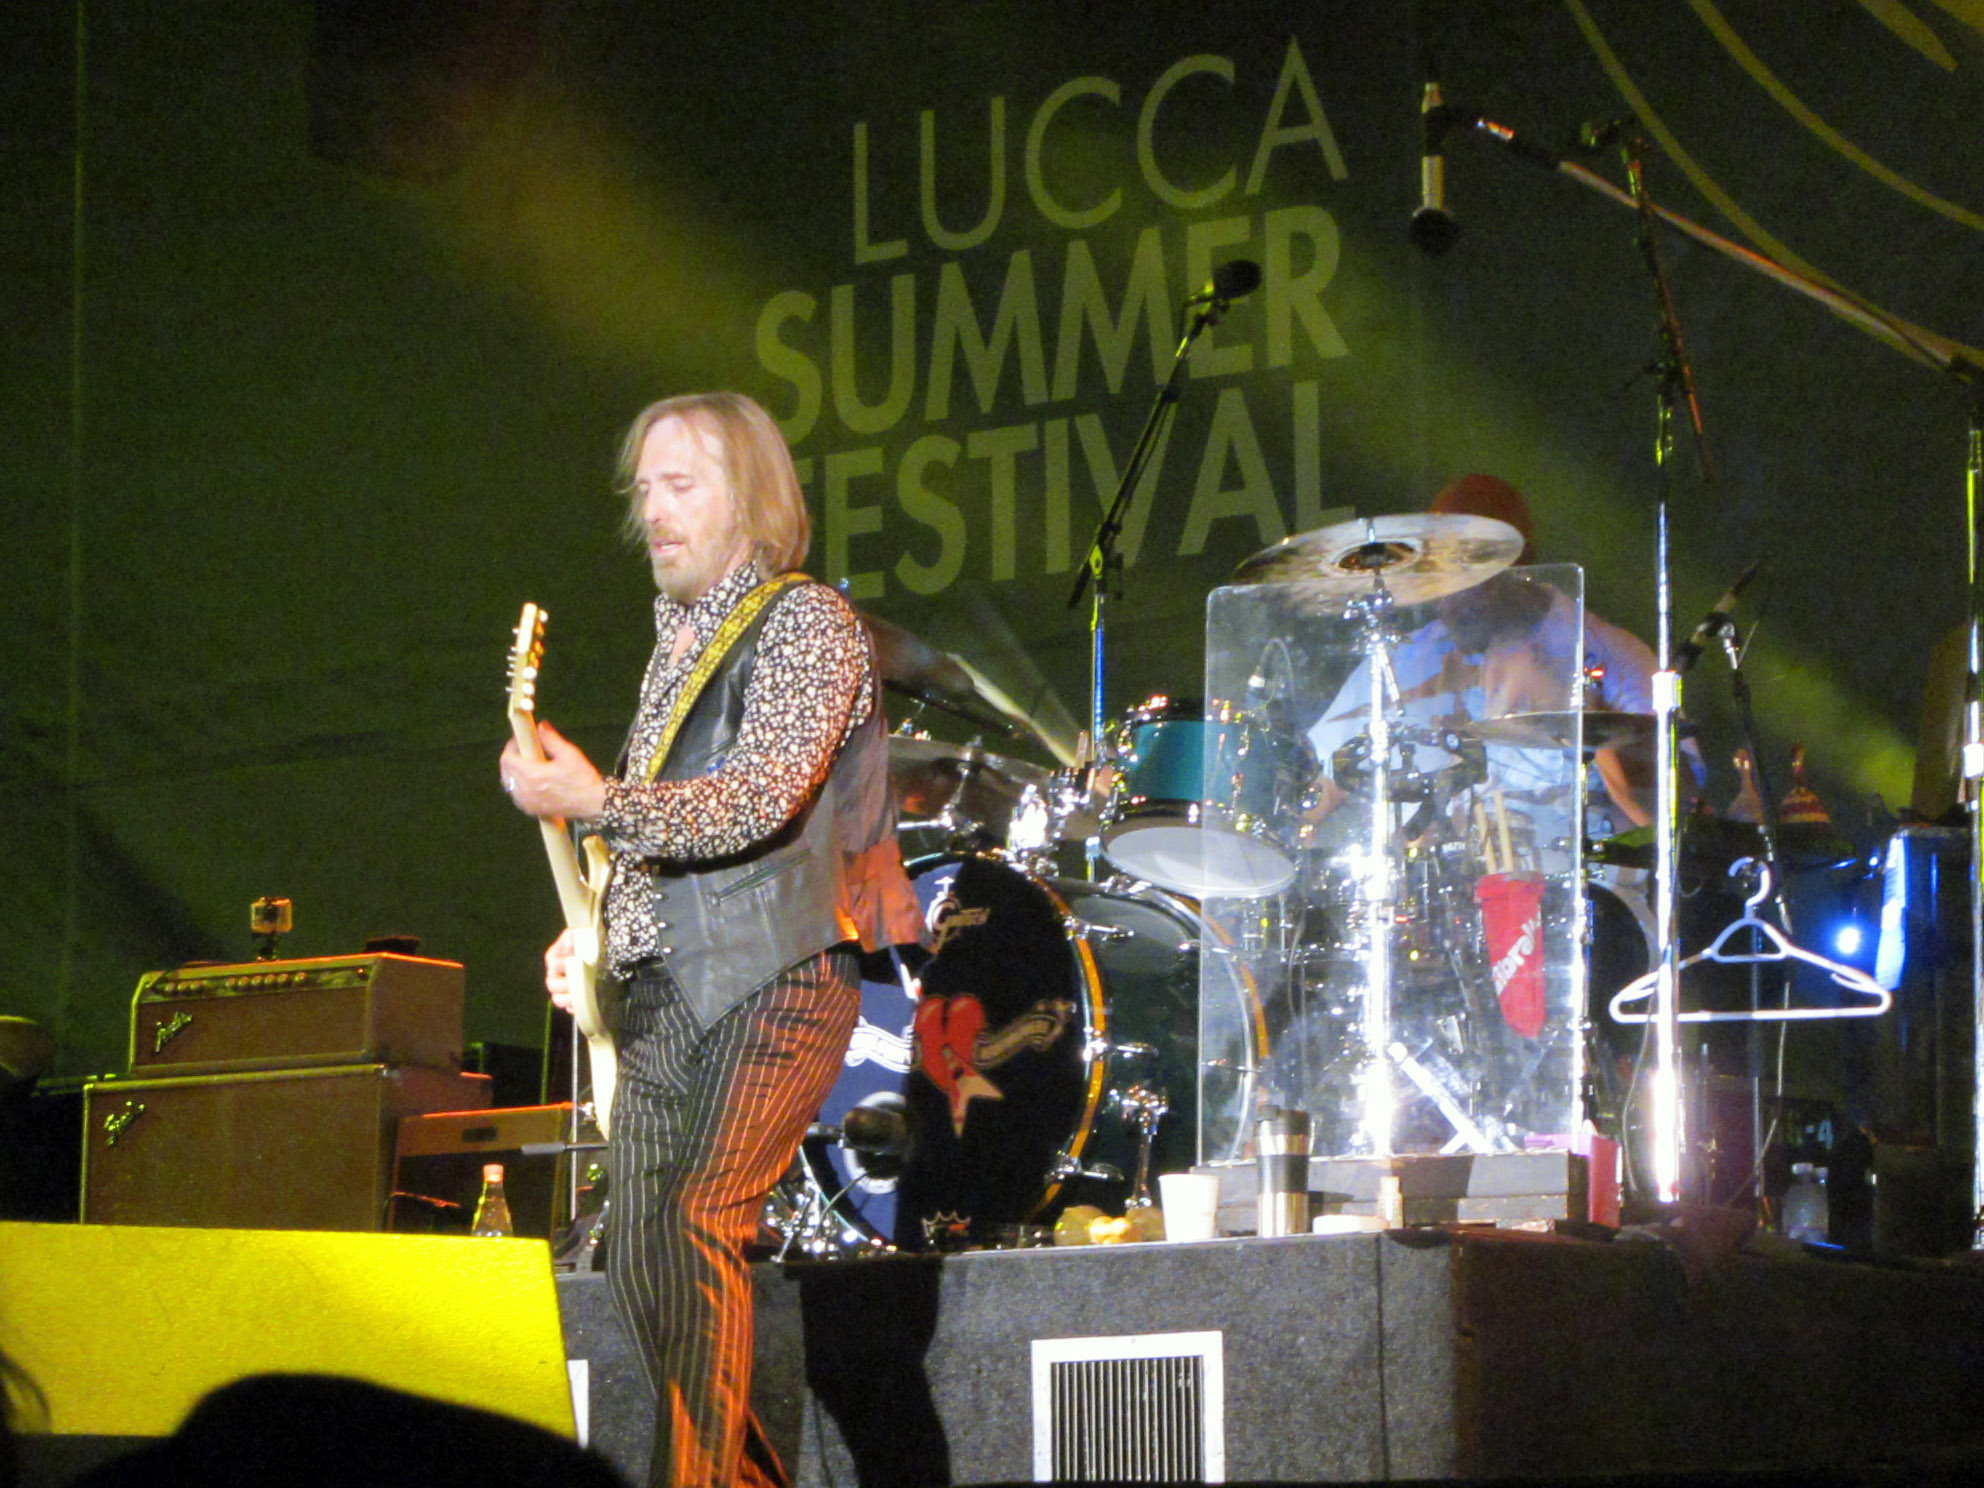 Resoconto del concerto di Tom Petty and The Heartbreakers del 29 giugno a Lucca